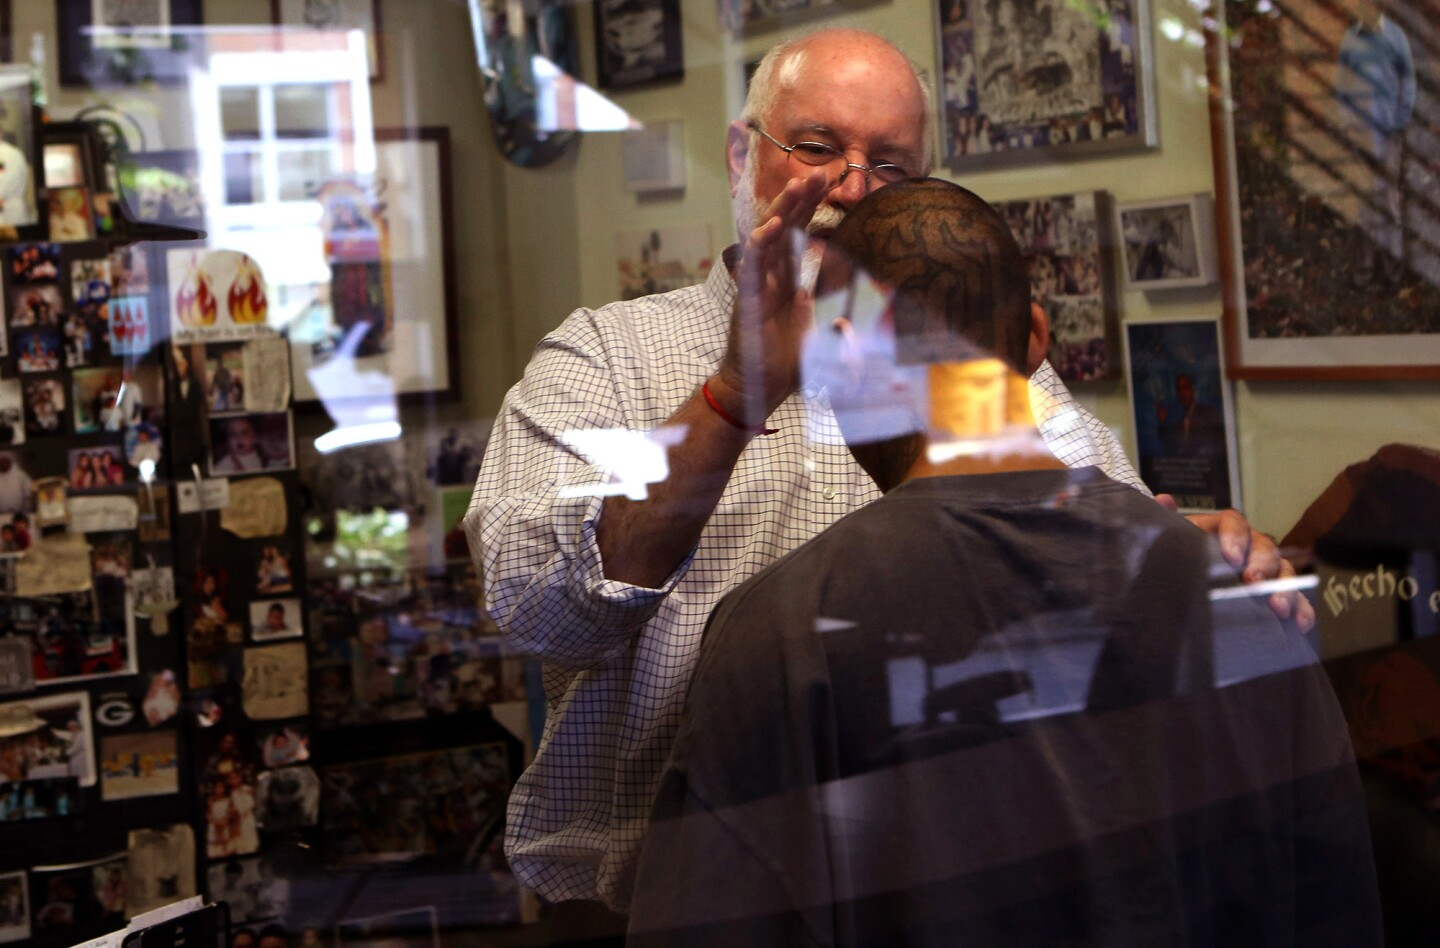 Father Gregory Boyle, founder and director of Homeboy Industries, prays over Rolando Motta, 26, in his office. Boyle created Homeboy Industries to assist high-risk youth.